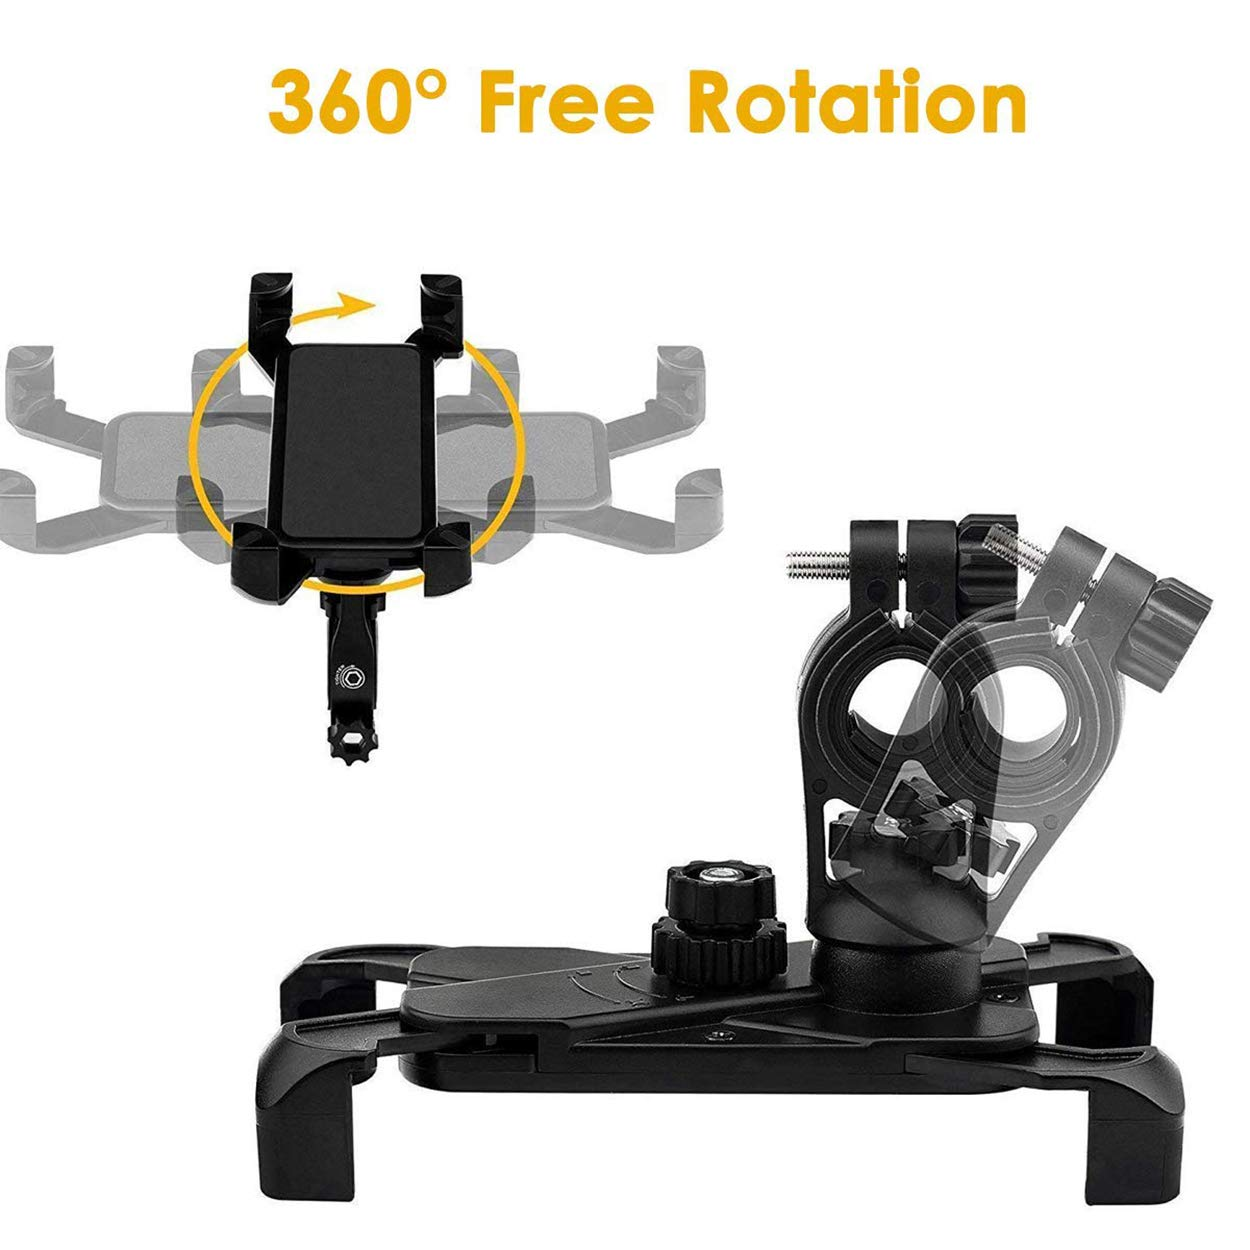 Lrifue Universal Anti Shake Bike Phone Mount 360/° Rotation Bicycle Cell Phone Holder for iPhone 11 Pro Max//XR//X//XS MAX//8//7 Plus Samsung Galaxy S10//S10 e//S10 Plus//S9 Plus//Note 10 Huawei Mate 30//9